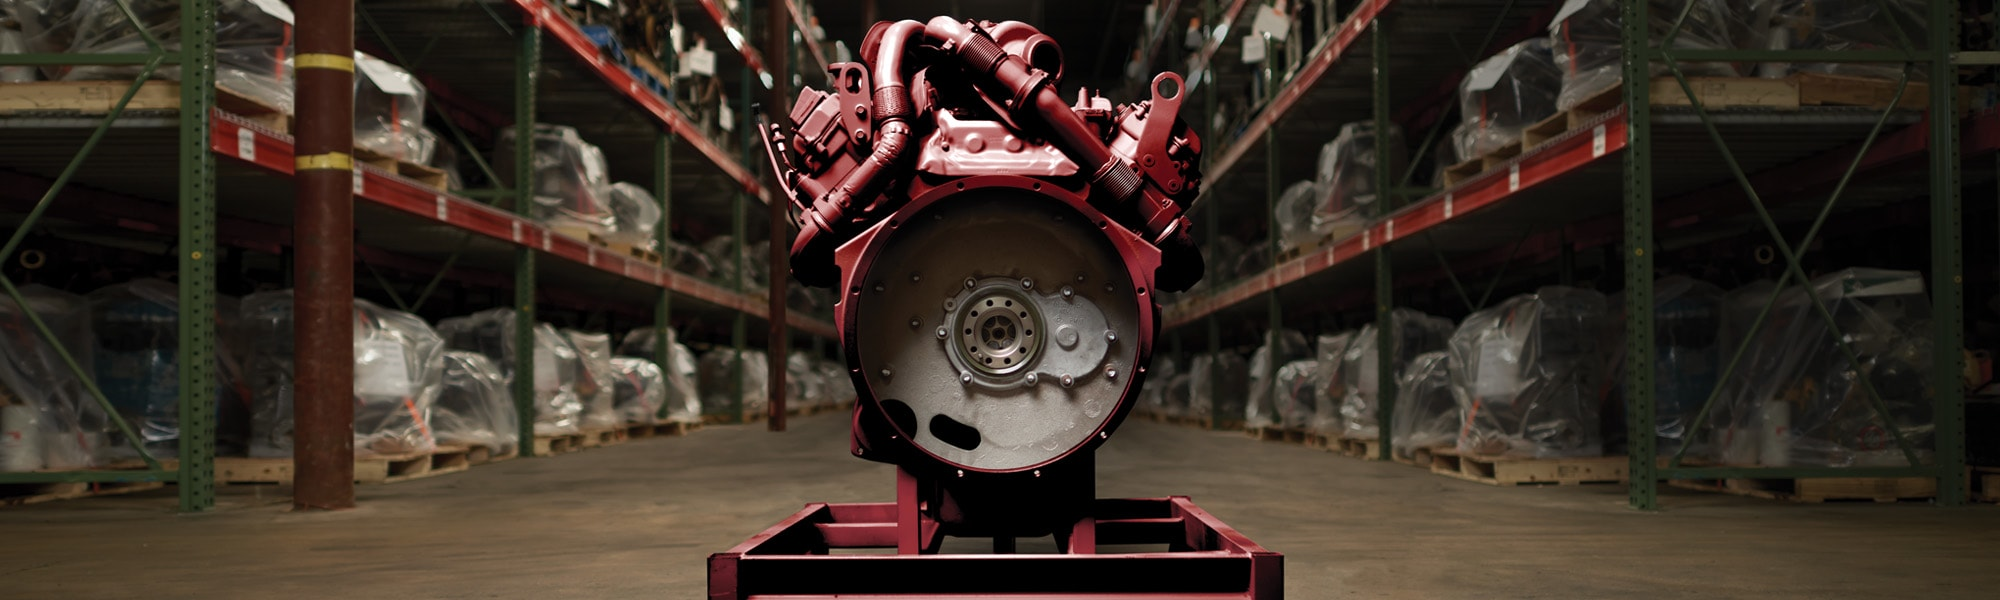 Remanufactured Diesel Engines and Components | Reviva